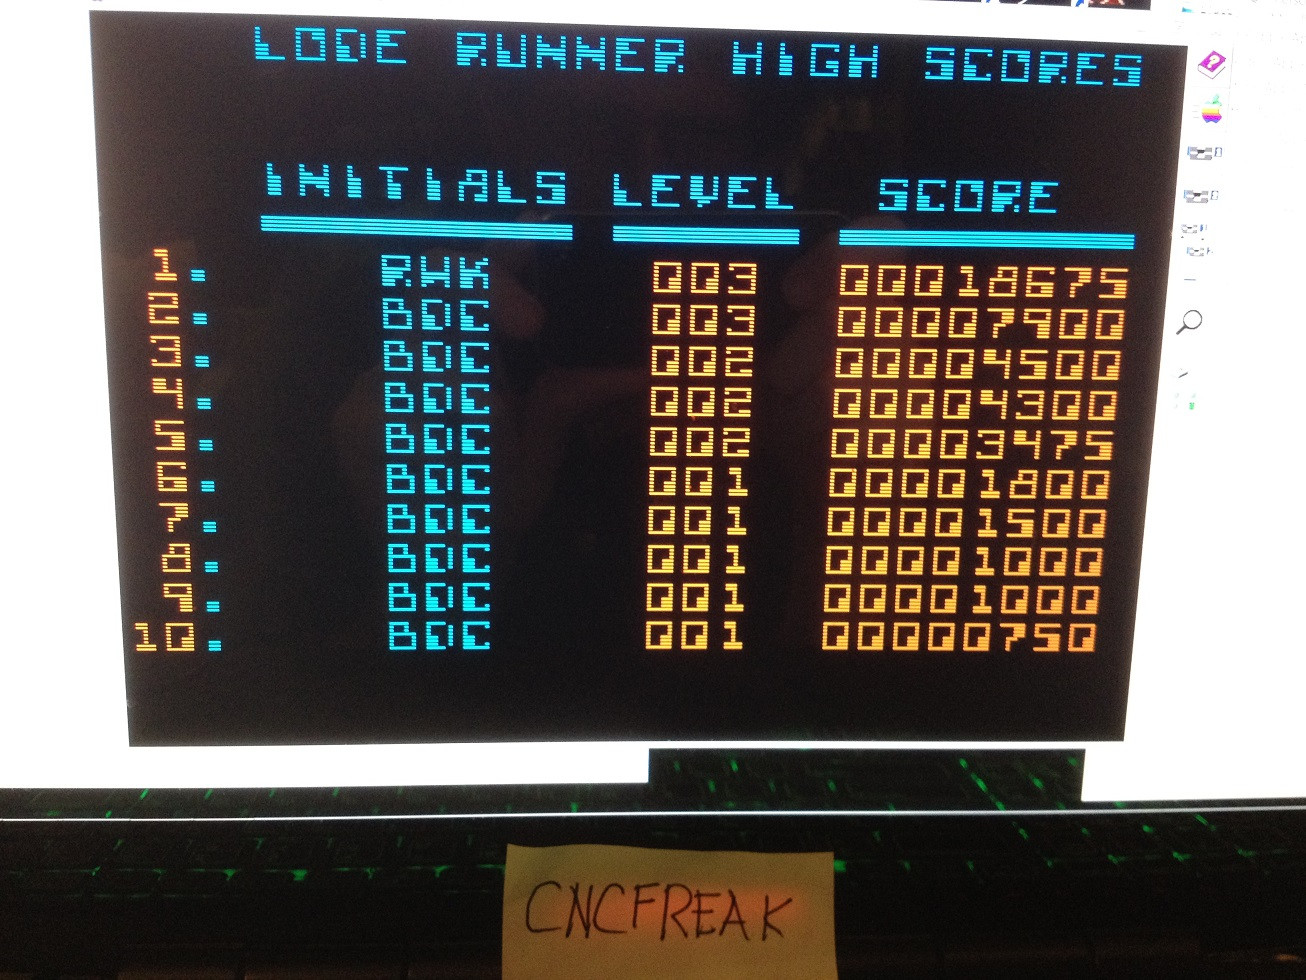 Lode Runner 18,675 points